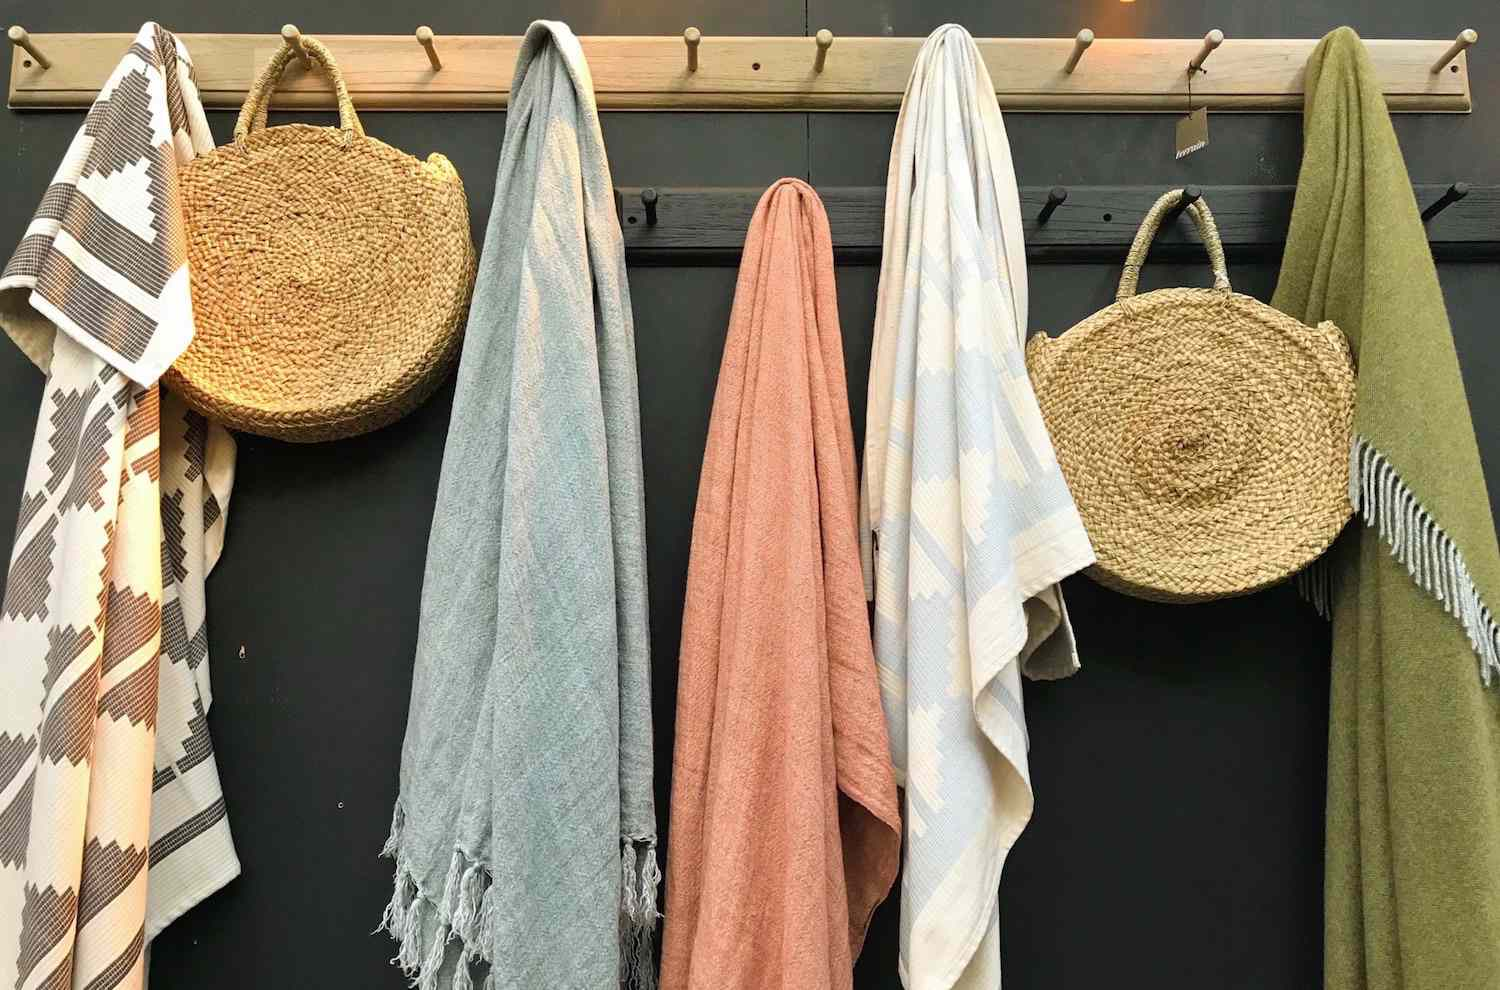 baskets and blankets on hooks